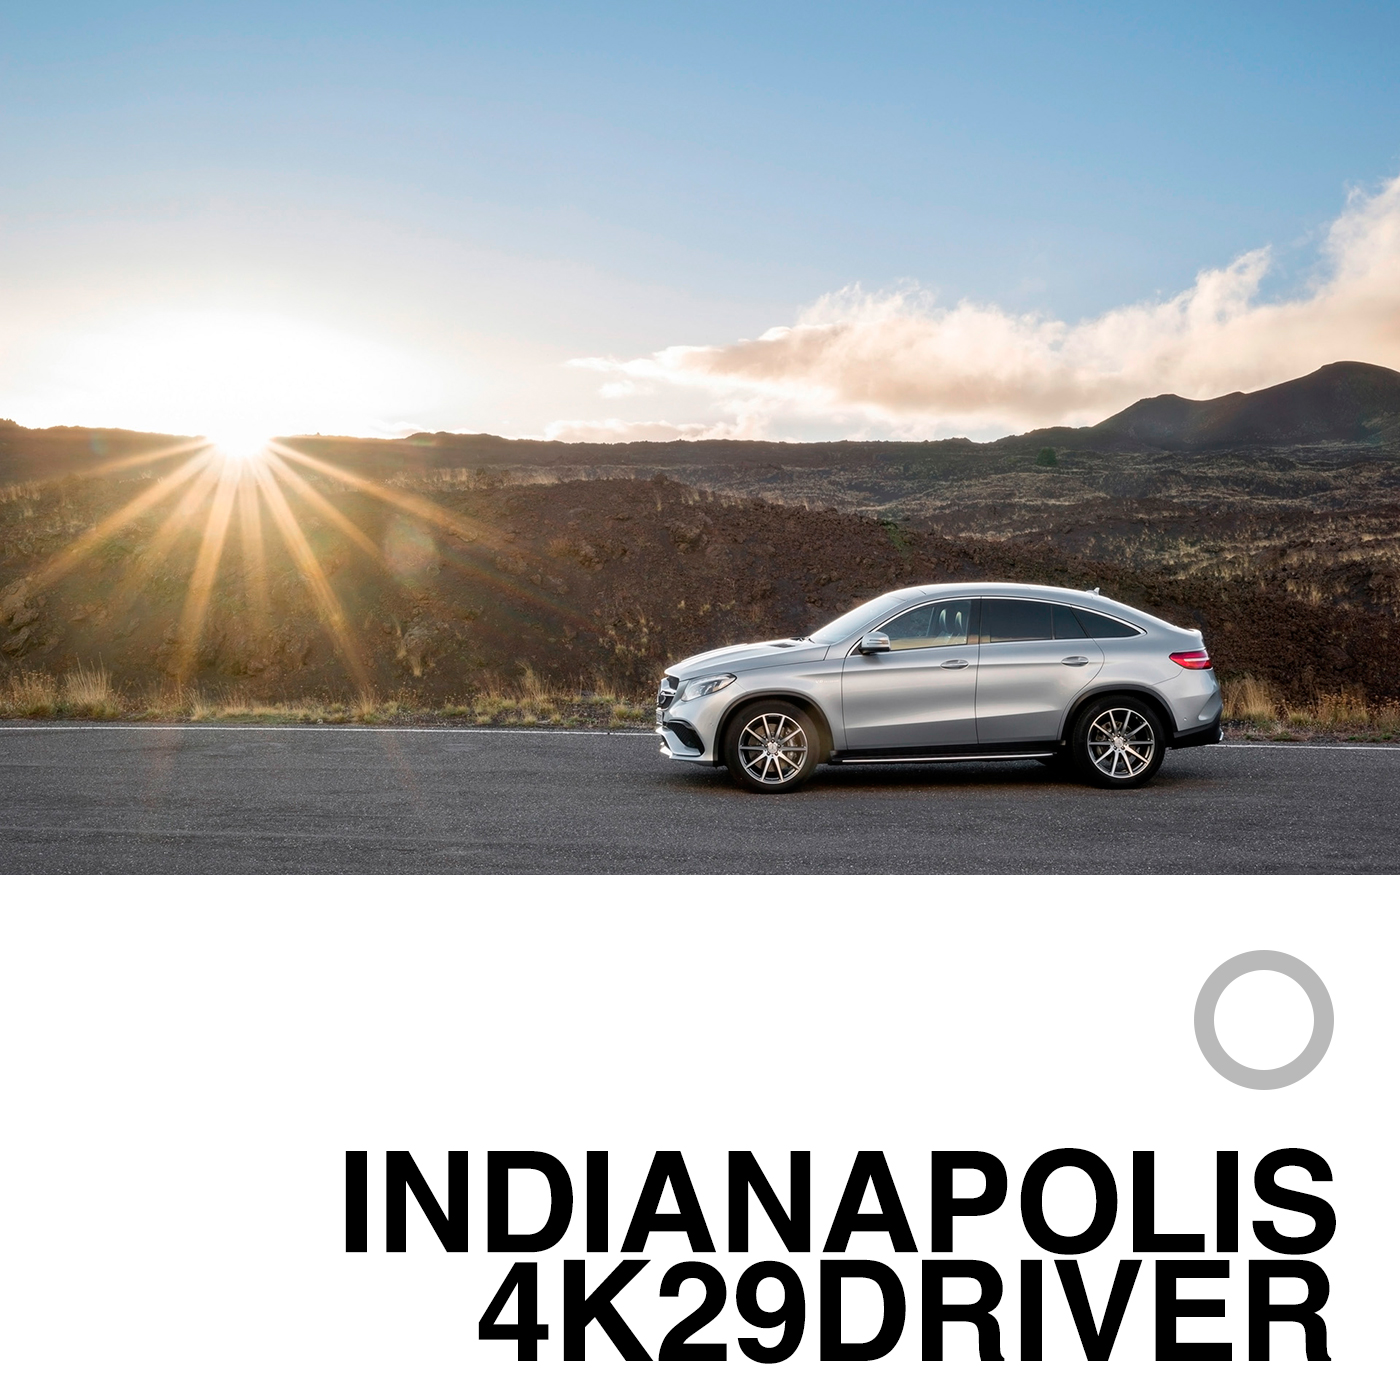 INDIANAPOLIS 4K29DRIVER MOBILE640